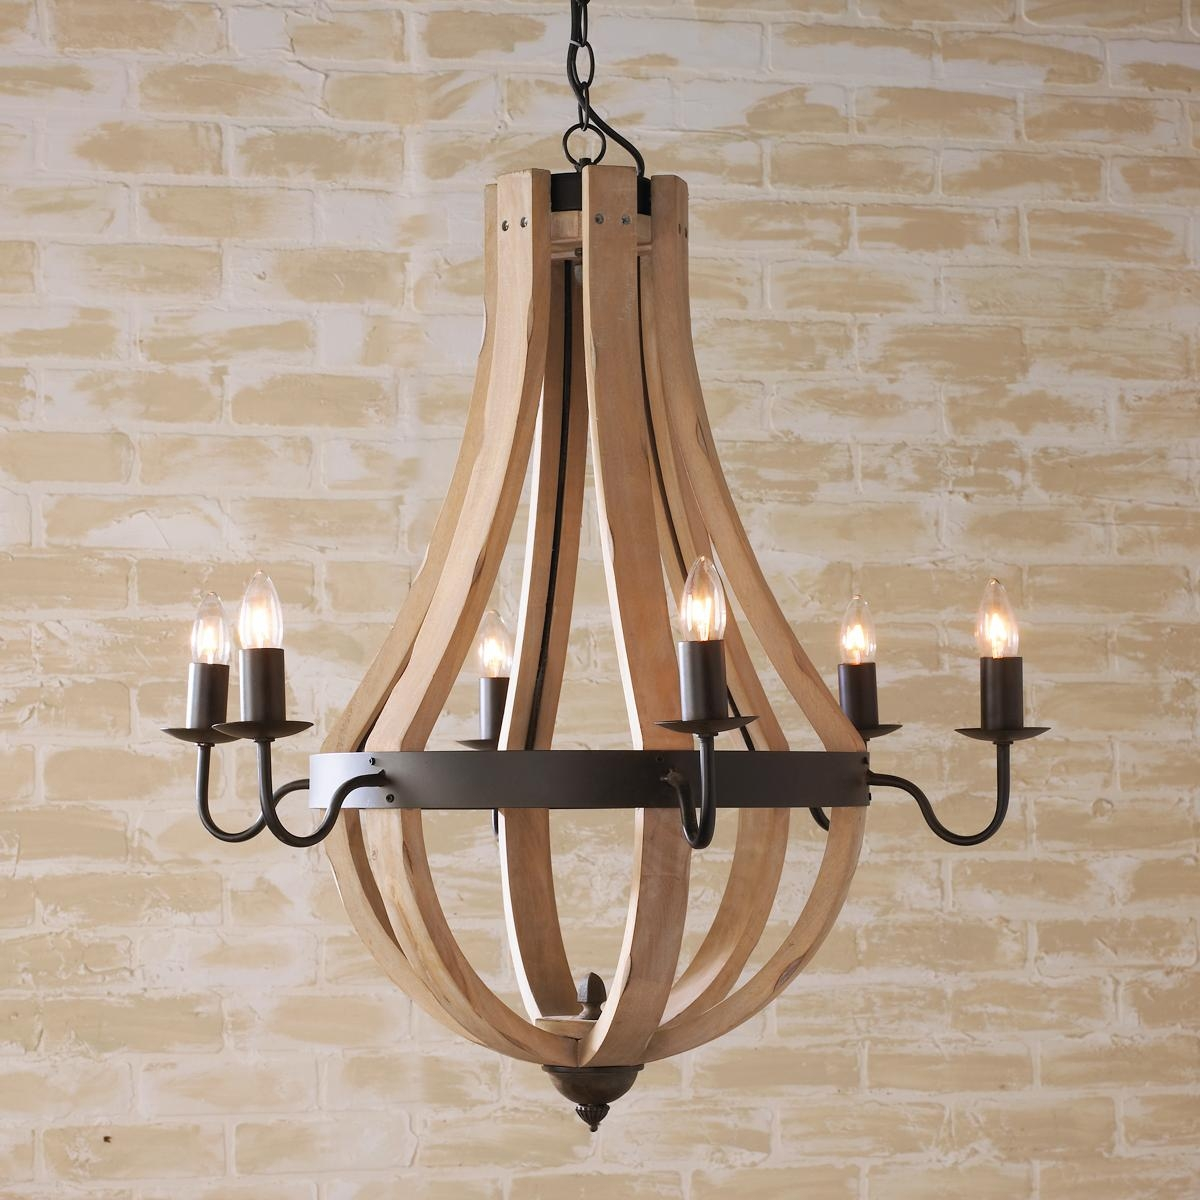 Wood Chandeliers Creative Home Decor Pinterest Plugs Throughout Wooden Chandeliers (Image 13 of 15)